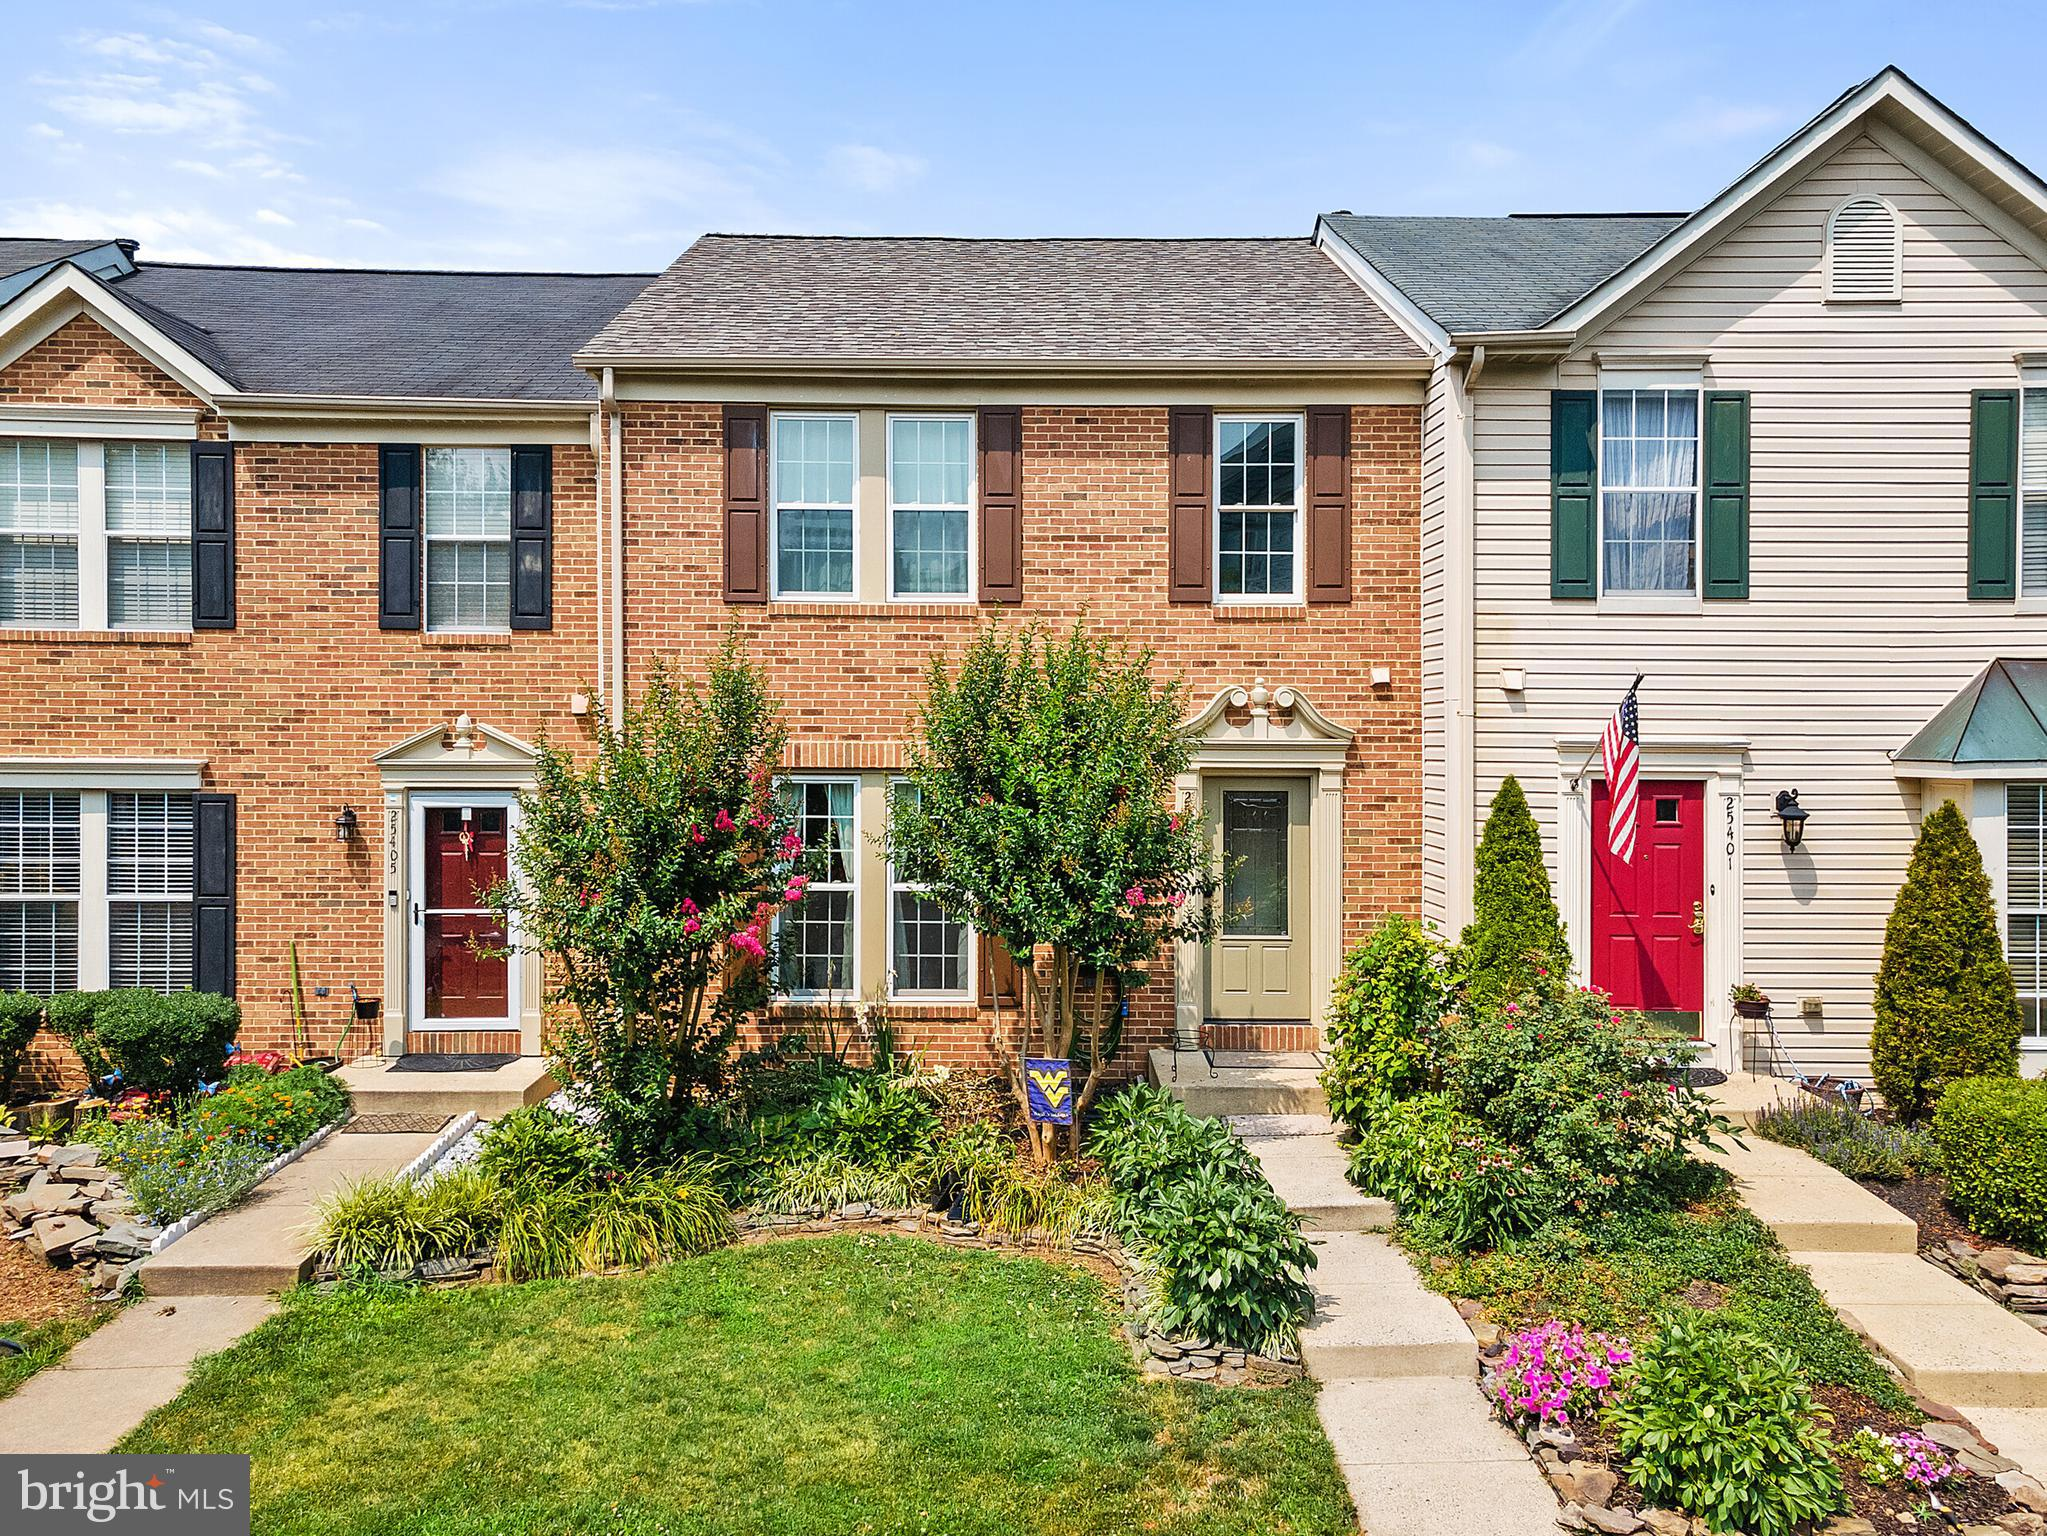 Fantastic opportunity to live in South Riding in this beautifully maintained  3 level town home. The outdoor landscaping and flower beds welcome you in. Enjoy grilling and evenings on your new trex deck!  New carpet throughout!  This unit has a 3 ft bump out on main and lower levels.  There are 3 bedrooms upstairs and a full finished lower level with den plus laundry room and huge recreation room.  Walks out level to the patio.  Enjoy all of the amenities South Riding has to offer including 4 outdoor swimming pools, tennis courts, parks, tot lots, walking trails, 17 ponds, stage for outdoor concerts, movie screen for outdoor shows, activity and meeting rooms and so much more! This home is well located and has quick access to Route 50 and just 15 minutes to Dulles Airport. Washington DC is about 30 miles.  Love where you live! Offers will be reviewed on Monday 8/9 at noon!